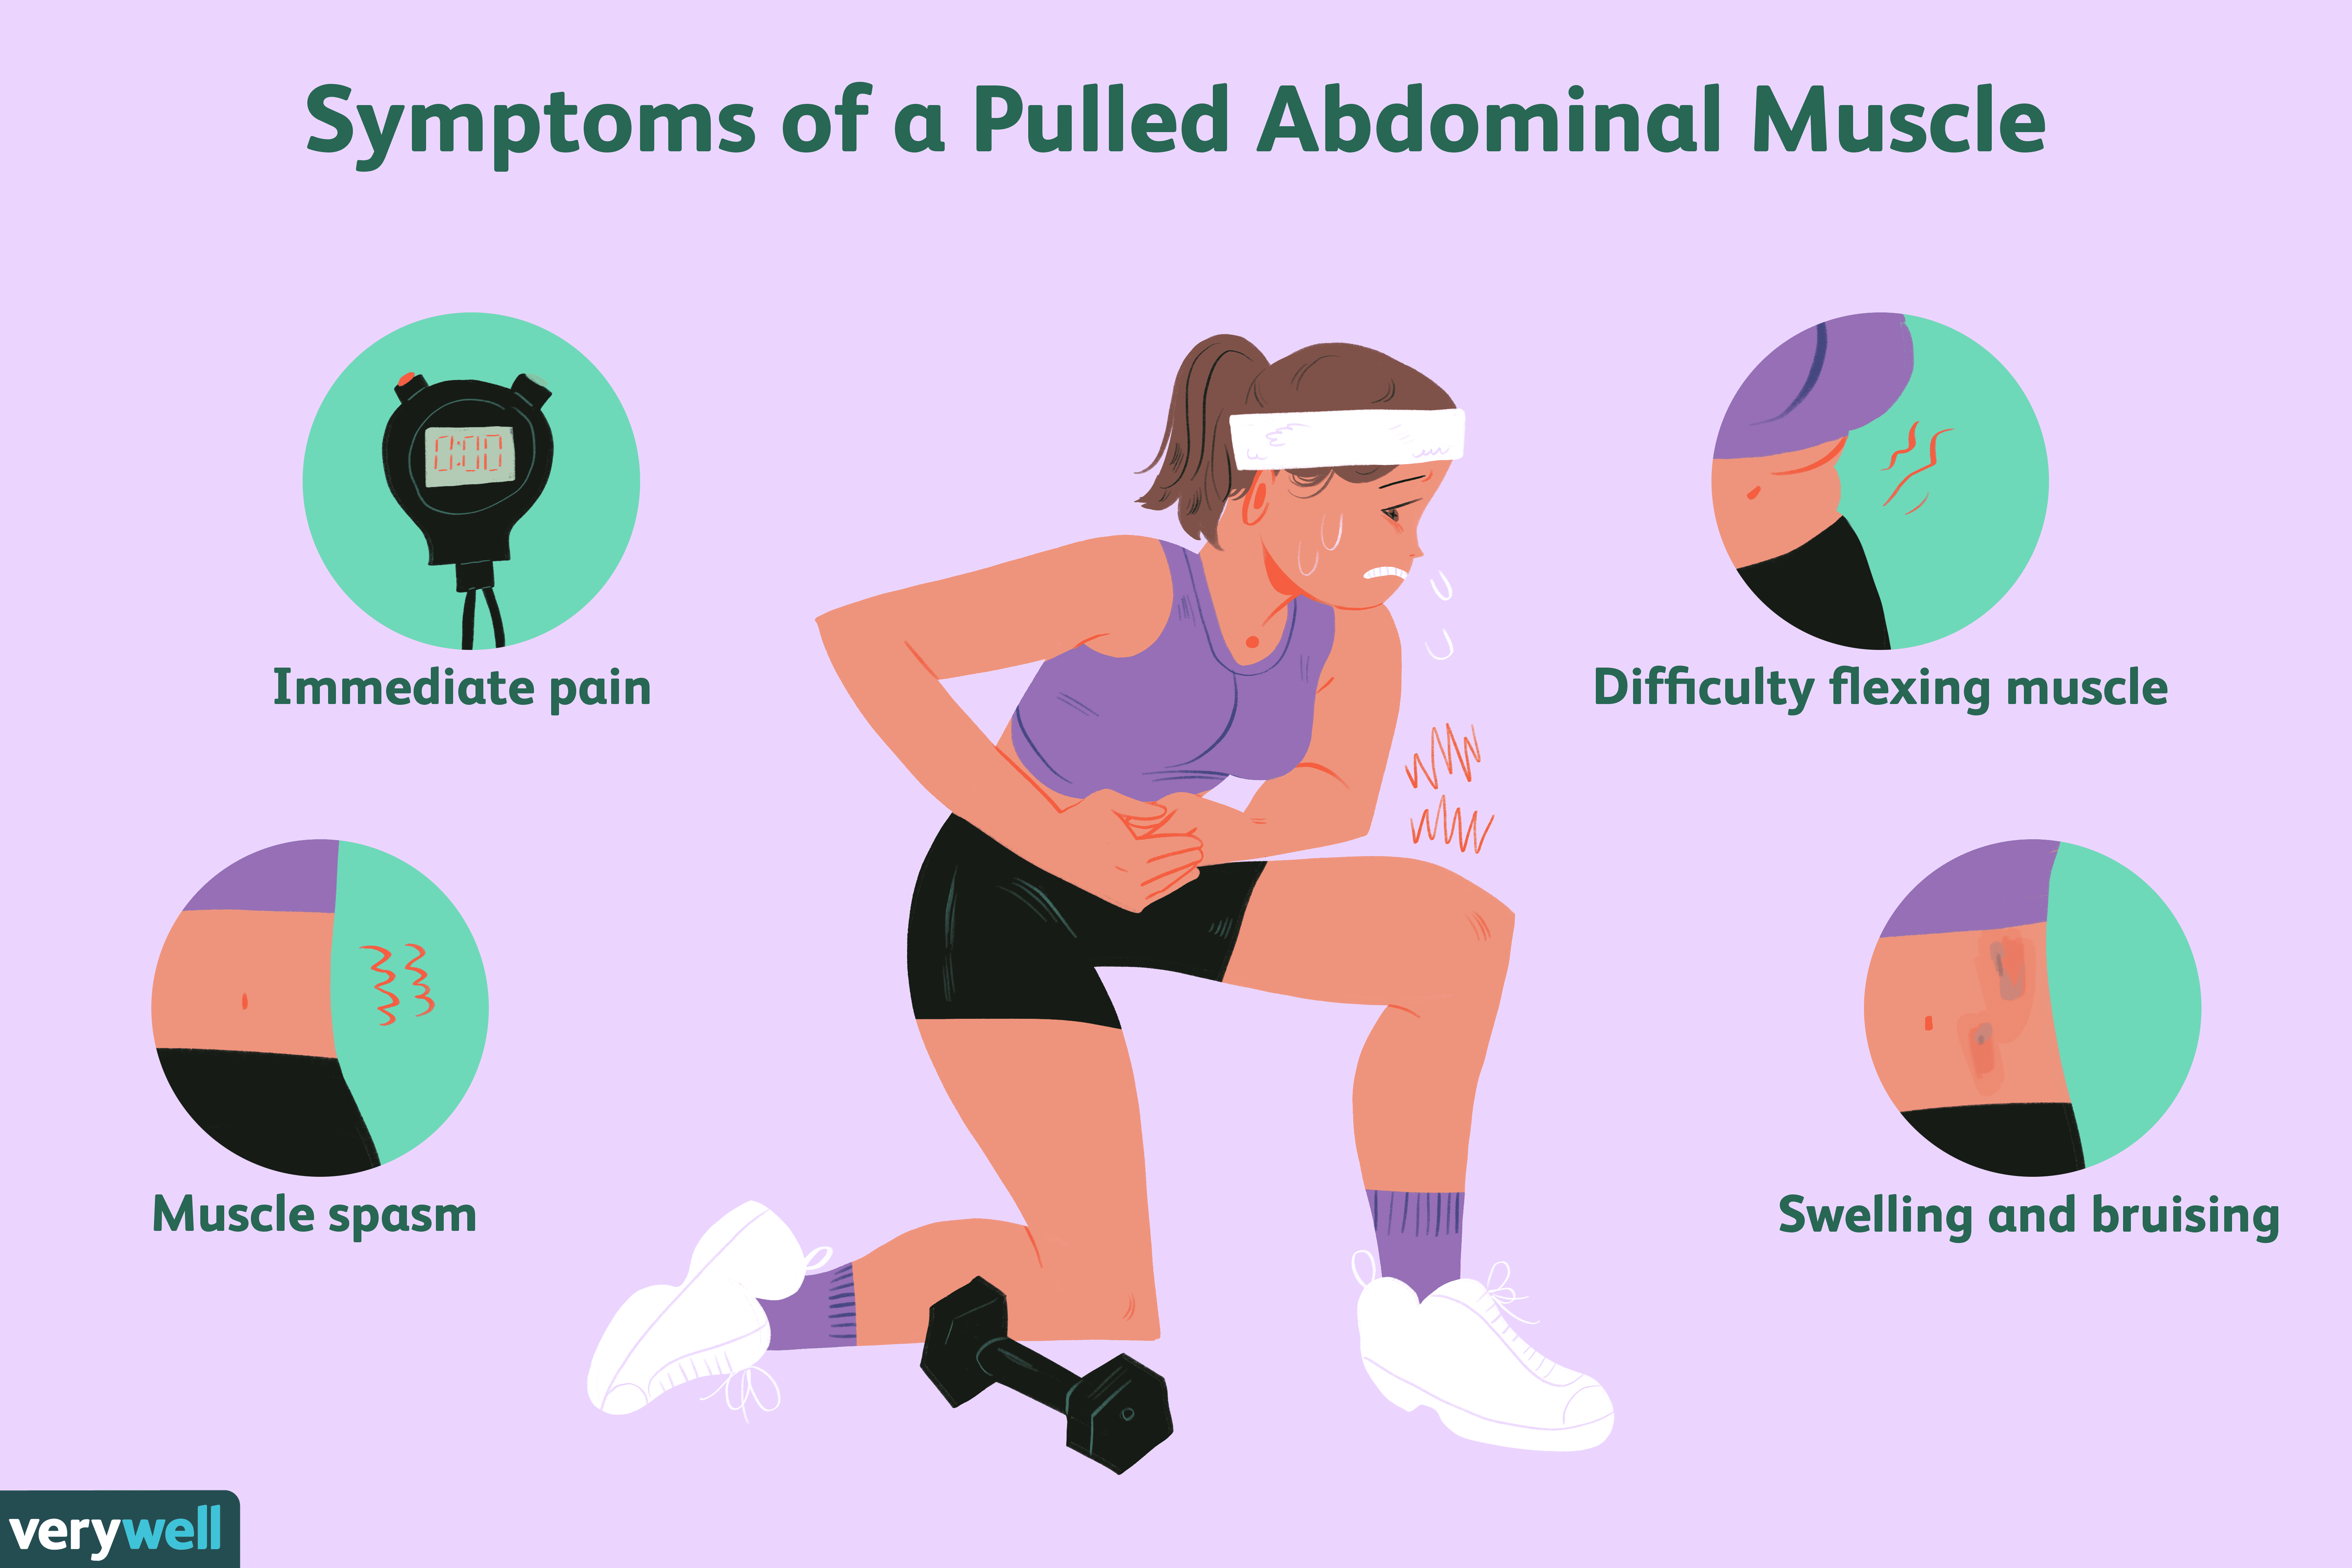 Symptoms of a Pulled Abdominal Muscle